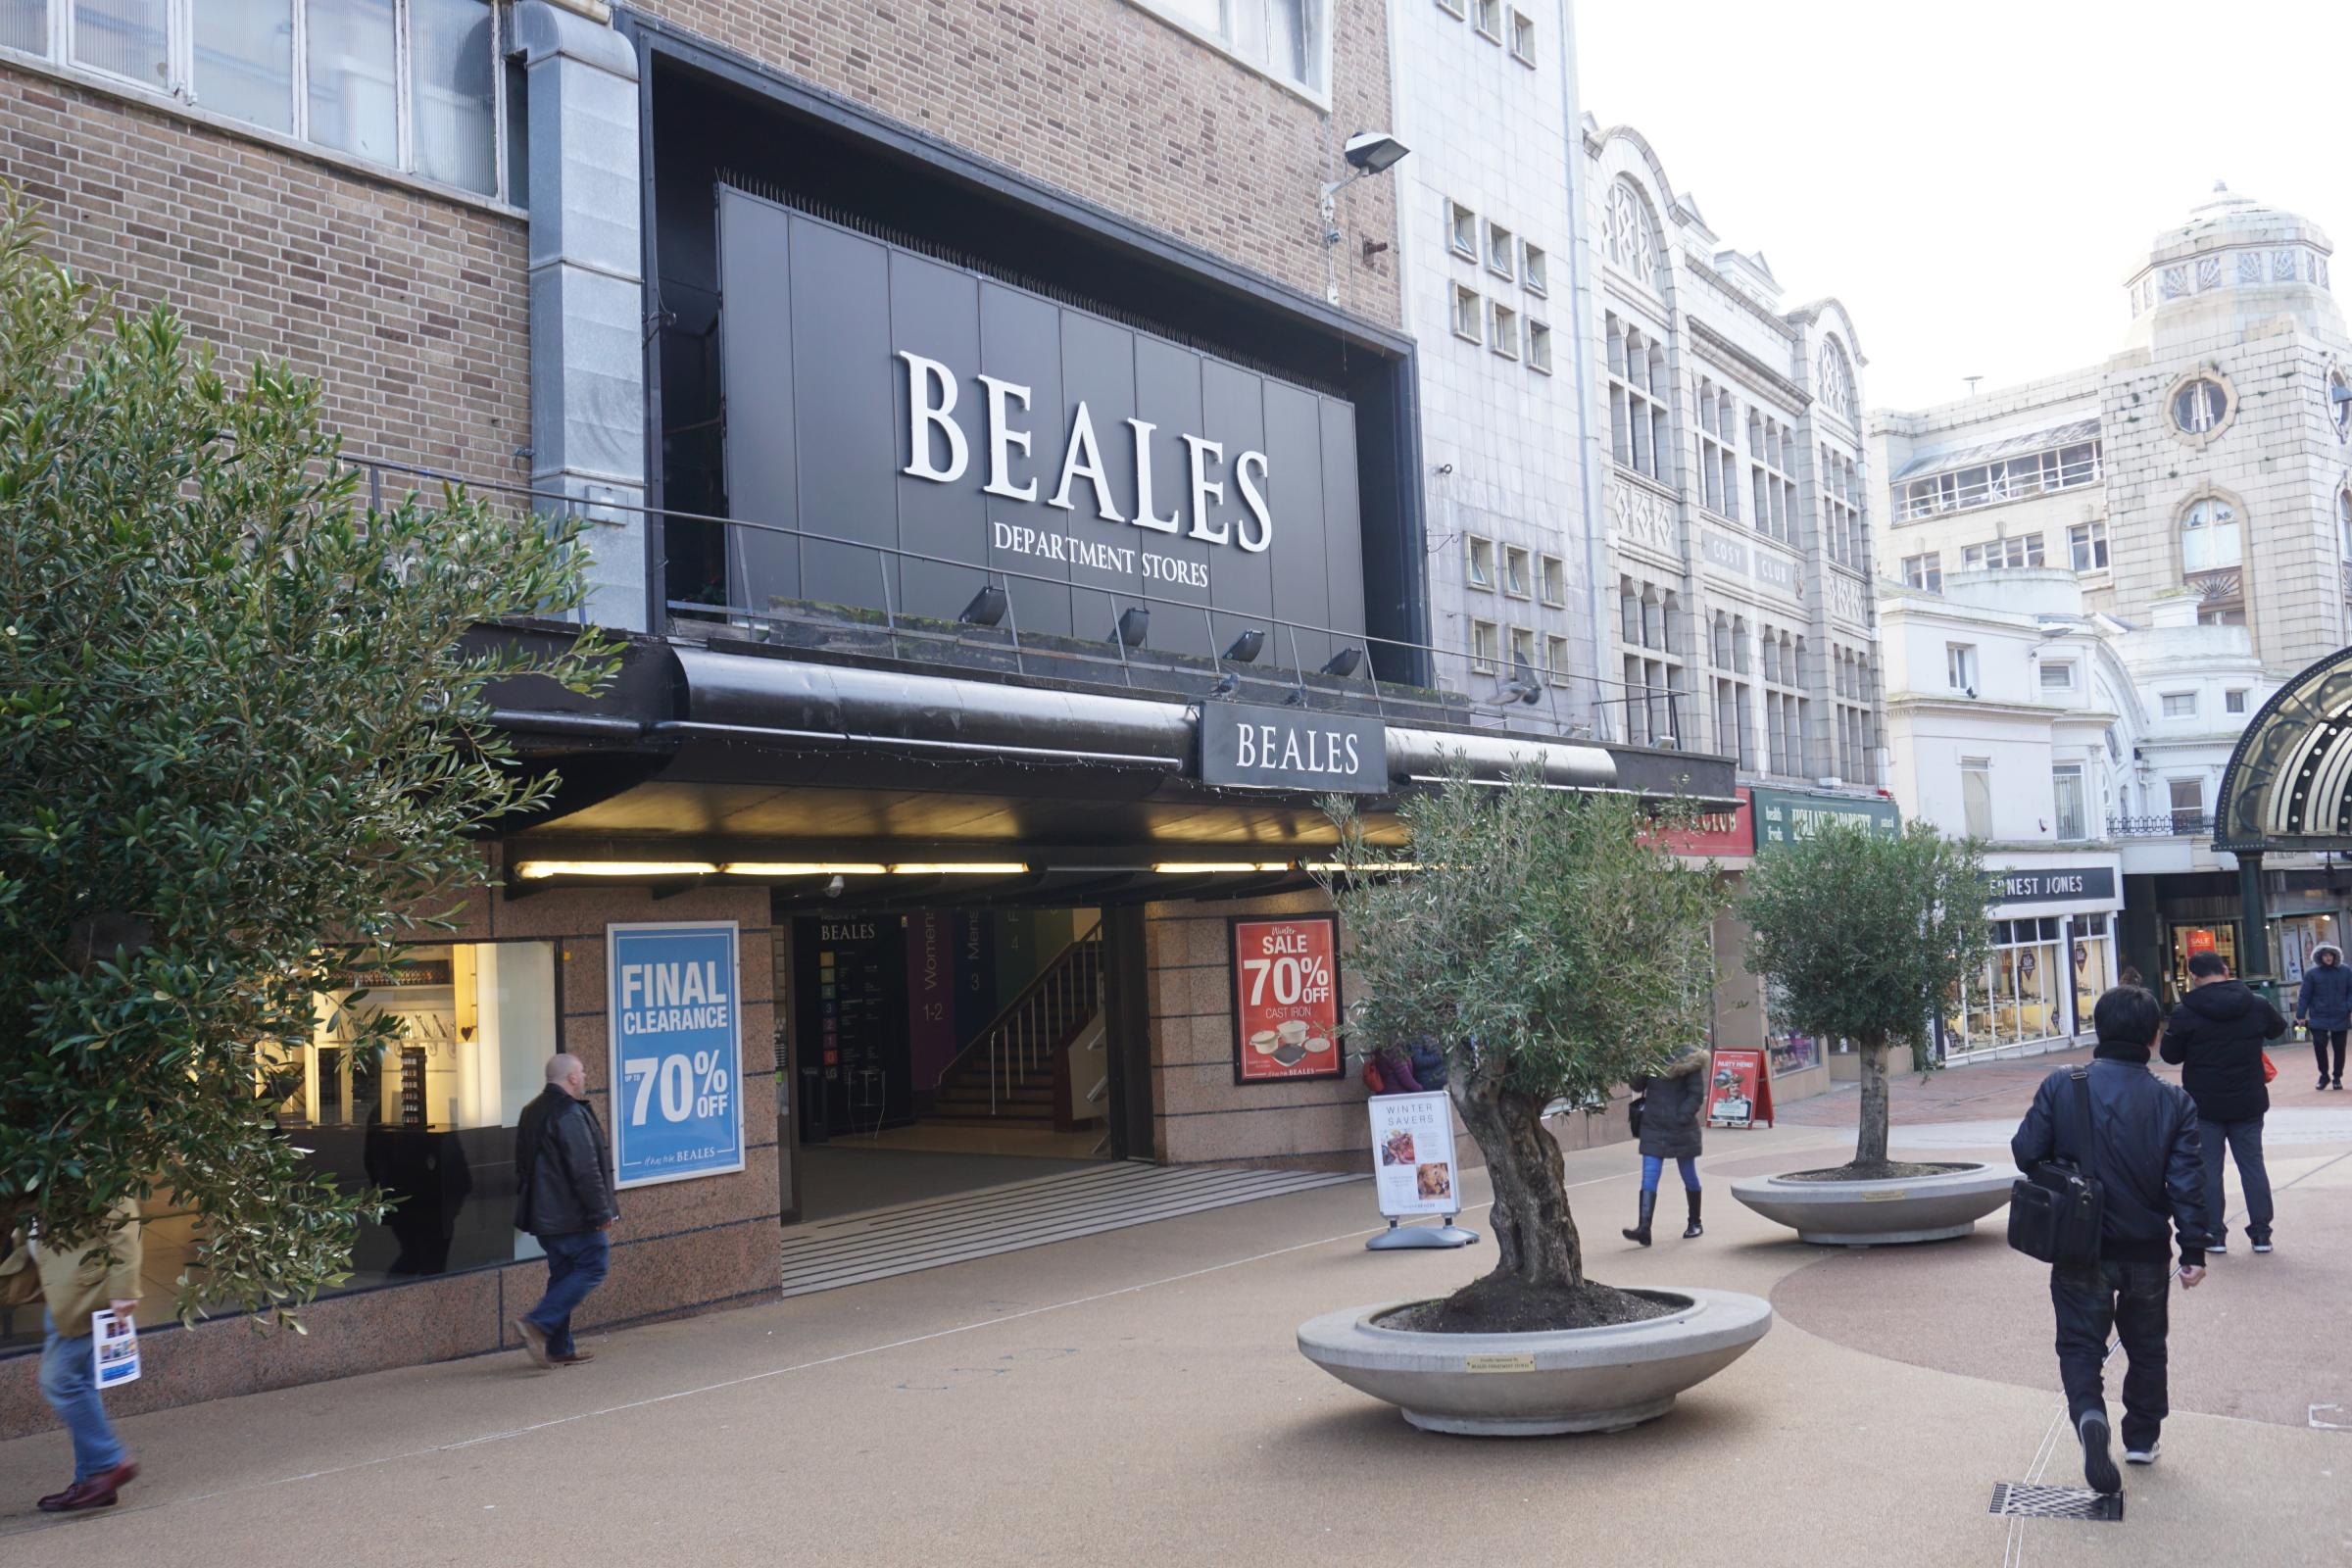 Beales boss asks for a break on 'lunatic' business rates... but council says: 'It'd create a hole in our budget'